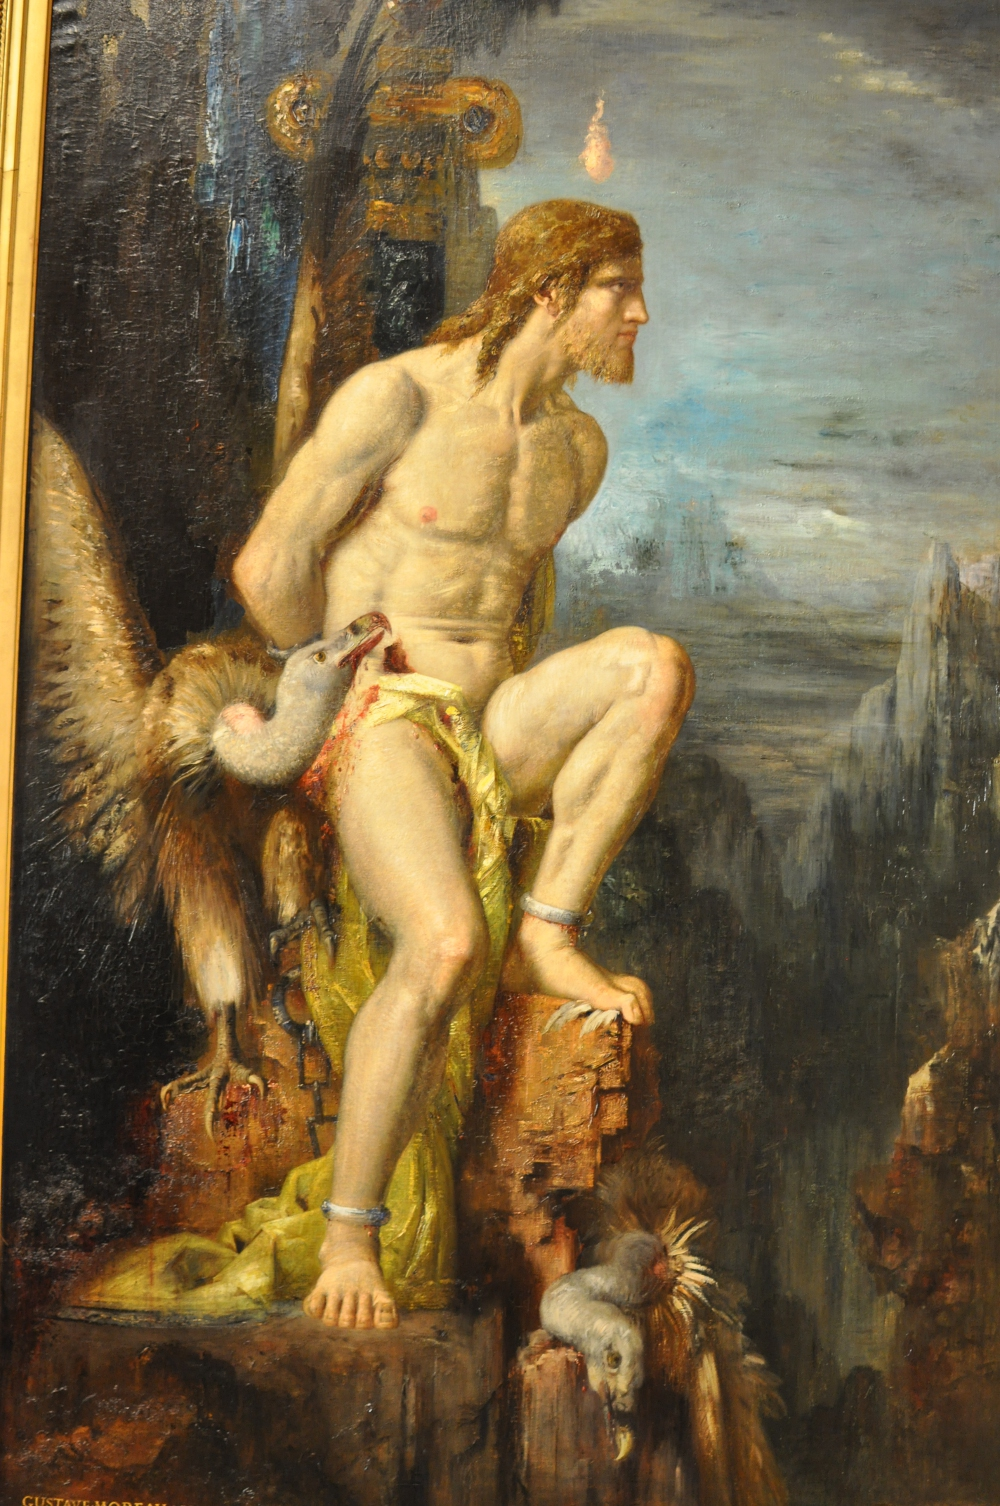 rocaille-blog-paris-november-gustave-moreau-museum-house-painter-symbolism (42)